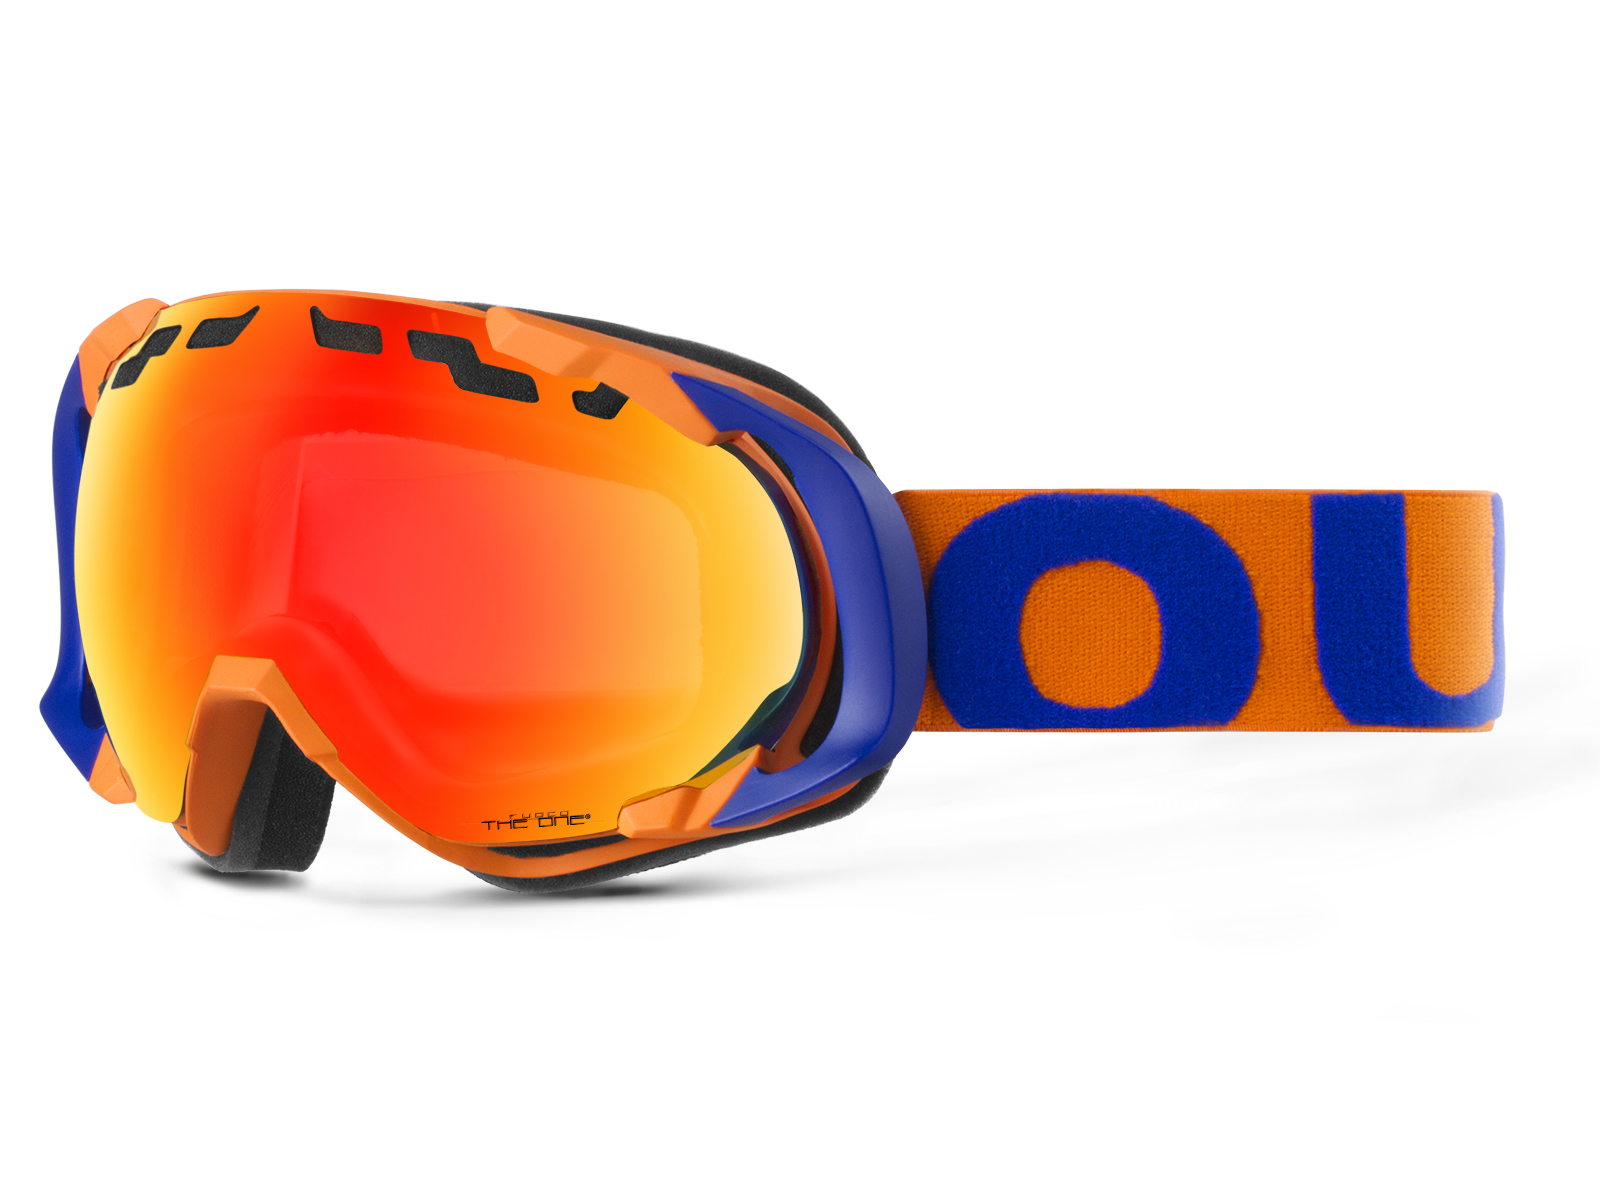 EDGE BLUE ORANGE THE ONE FUOCO GOGGLE